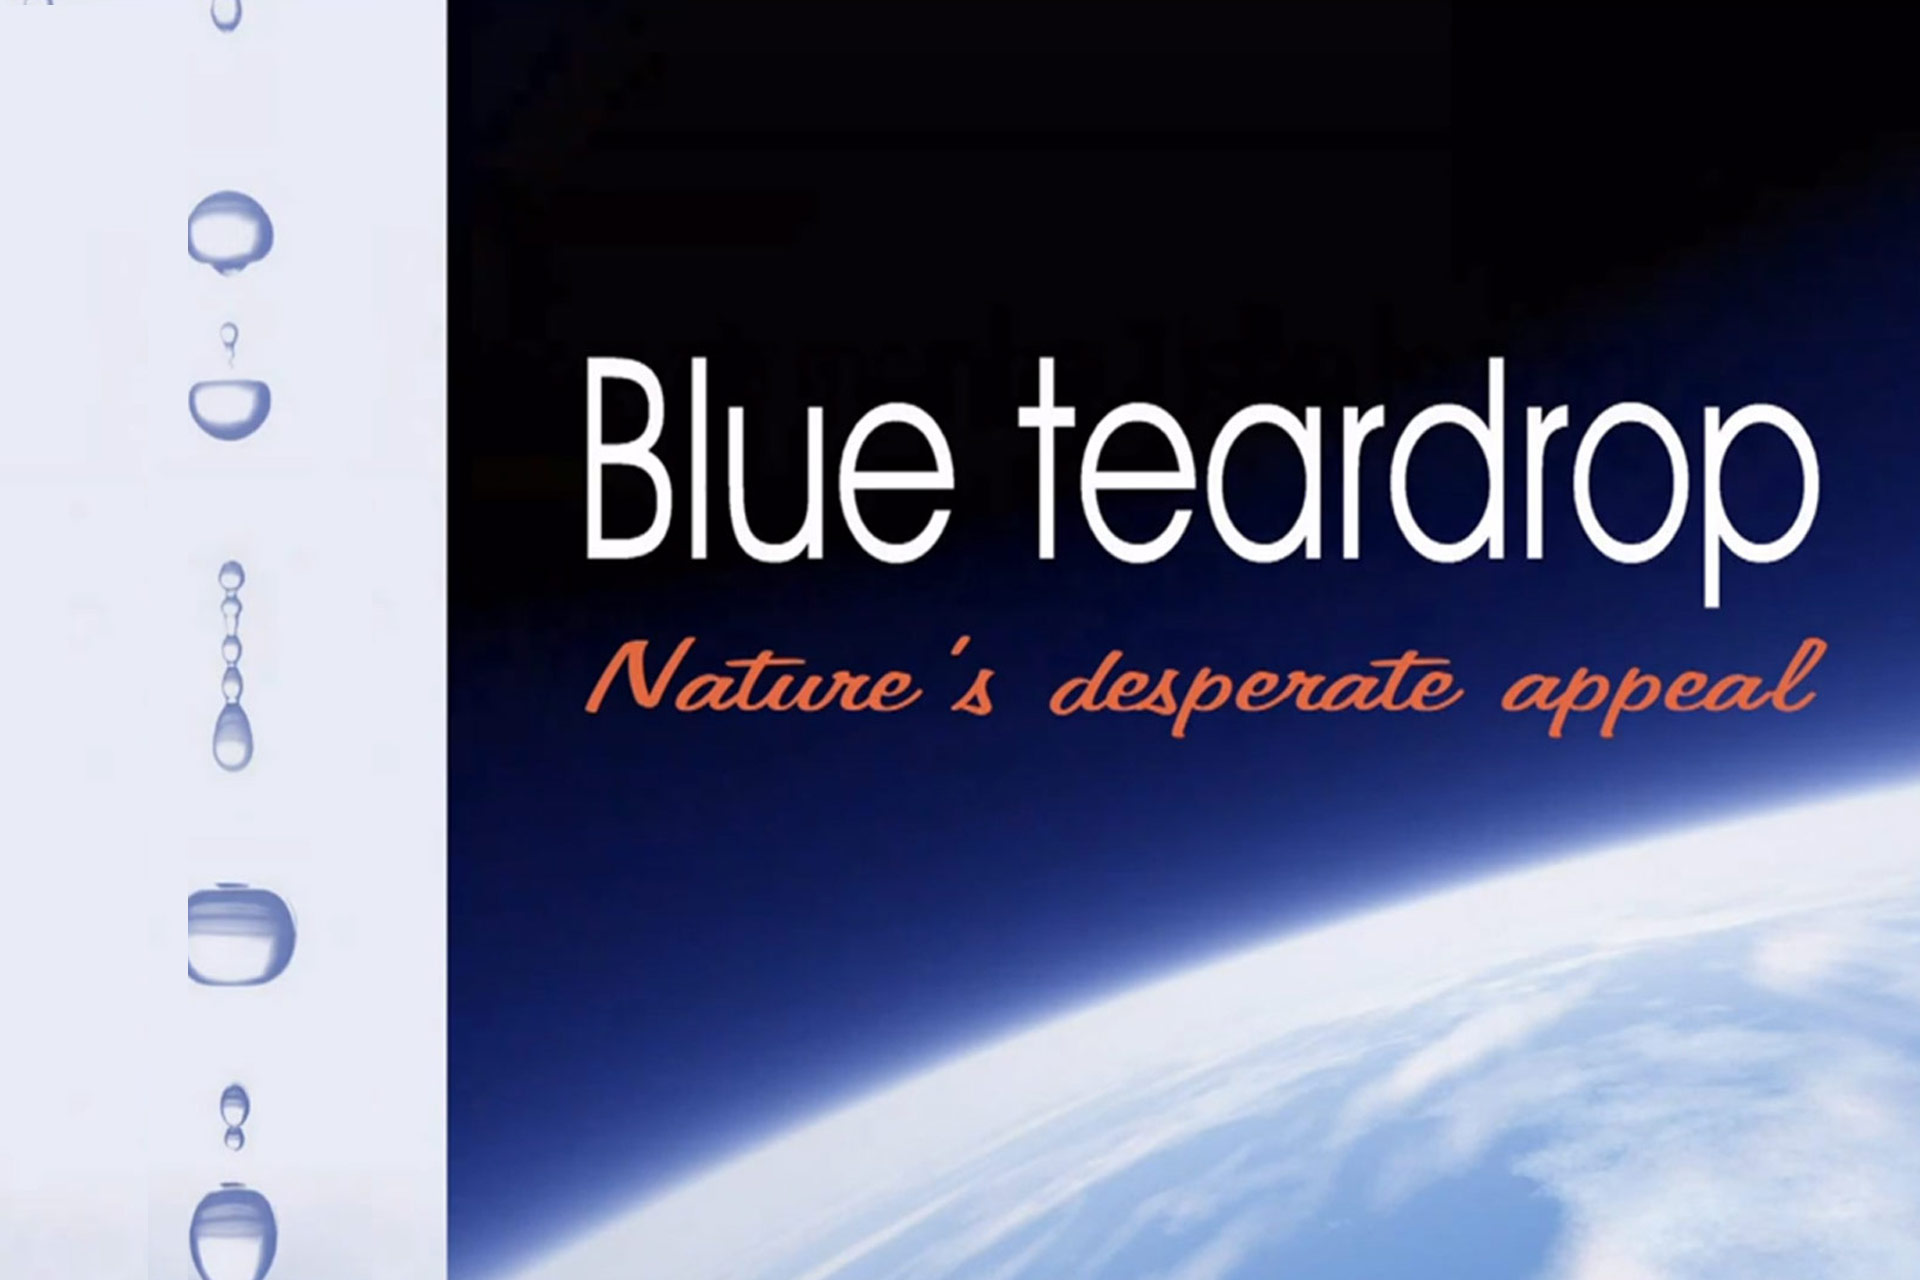 Blue teardrop - Nature's appeal